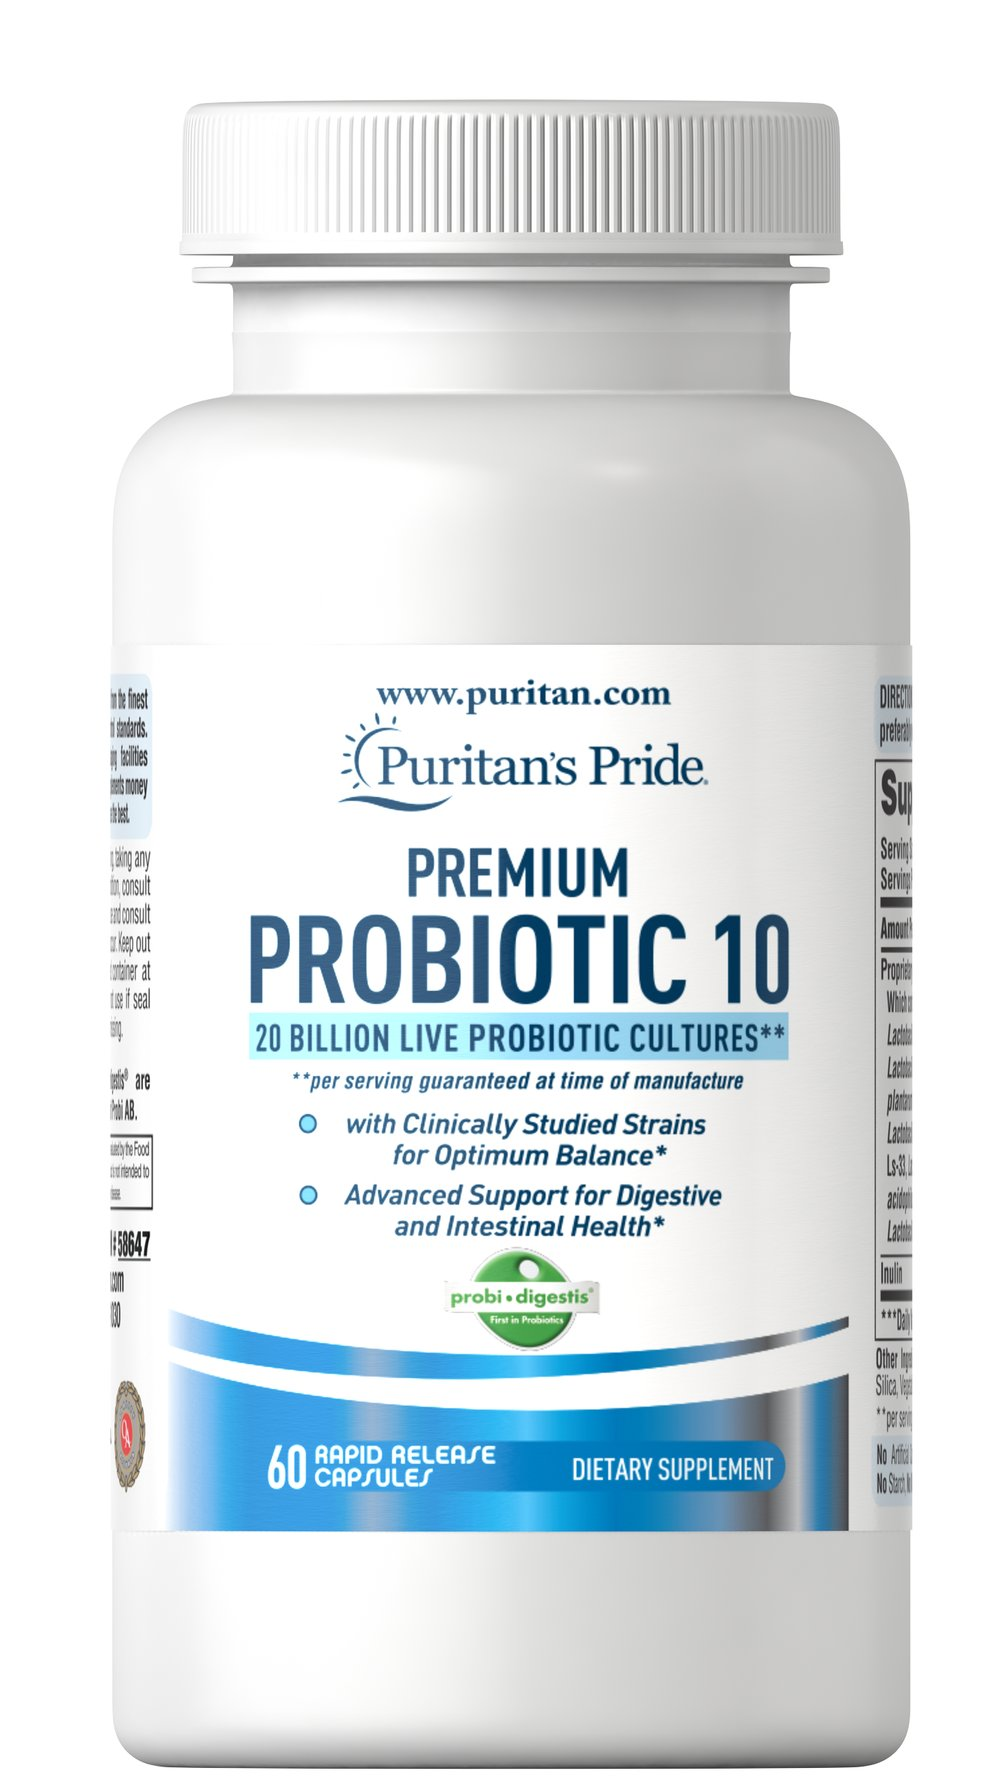 Premium Probiotic 10 Thumbnail Alternate Bottle View